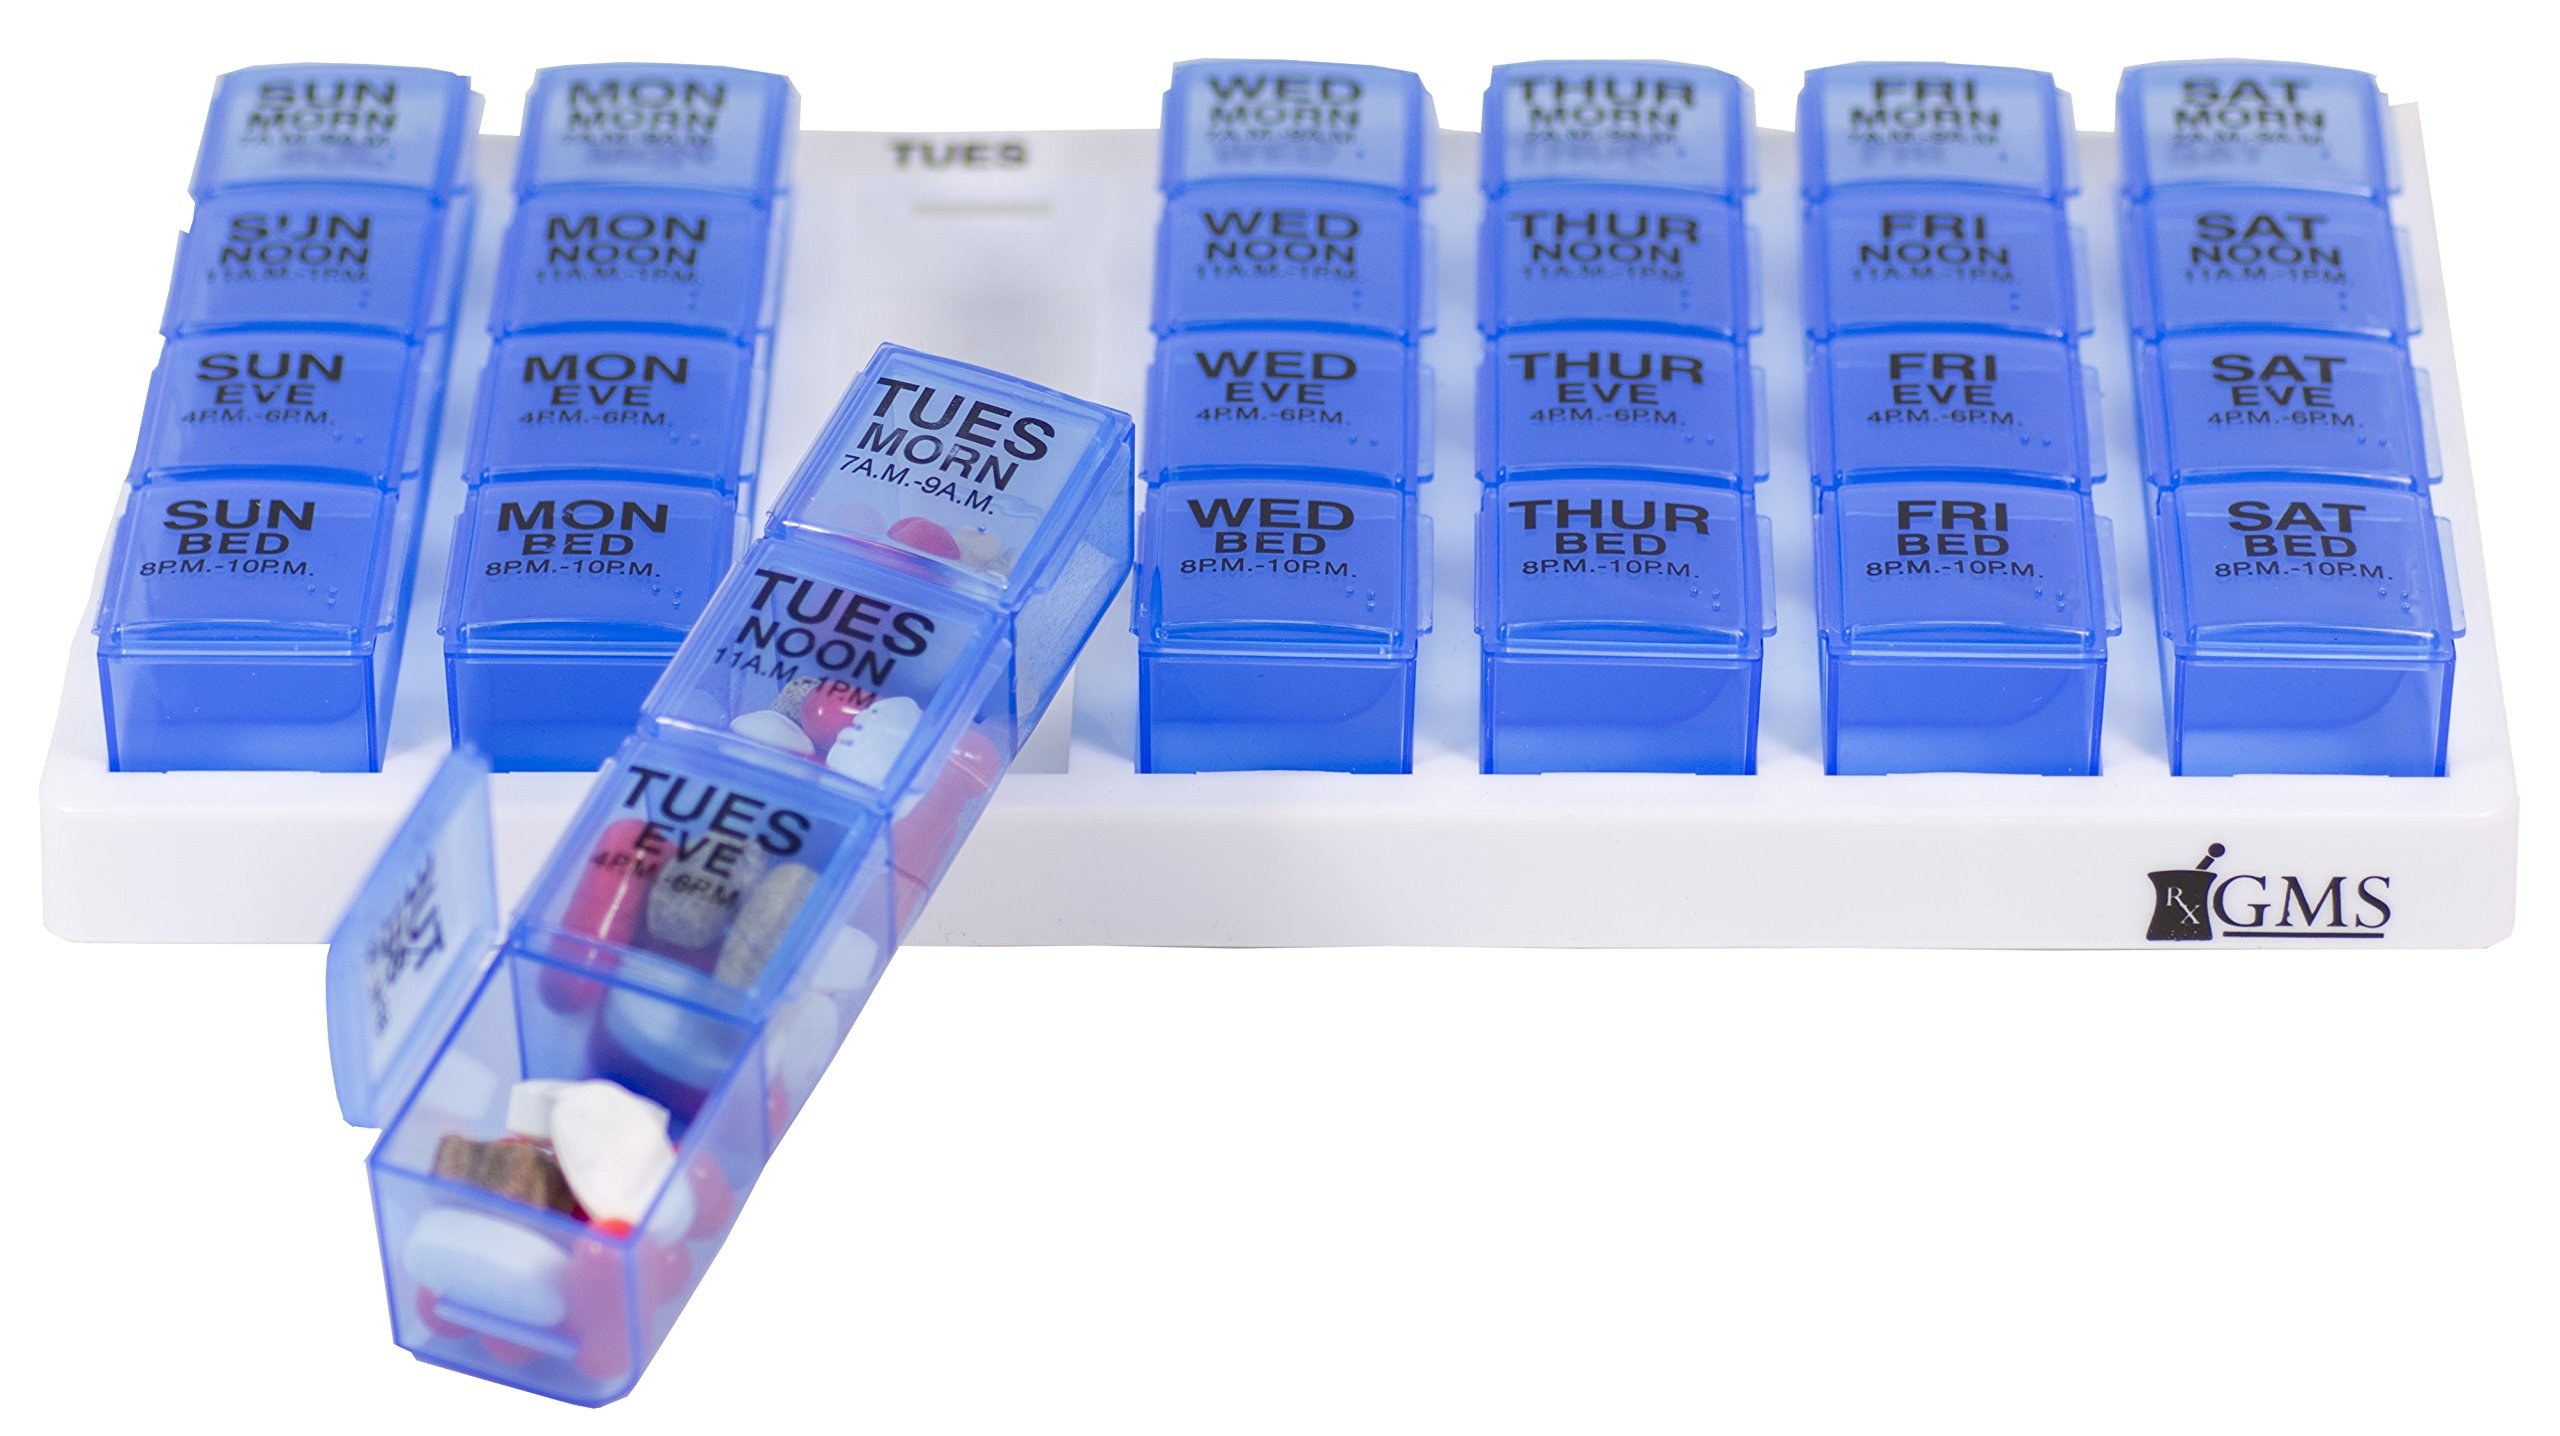 Gms 7 Day Pill Organizer Tray - Large with Removable Daily Pill Boxes with 4 Compartments Each (Blue) by GMS Group Medical Supply, LLC